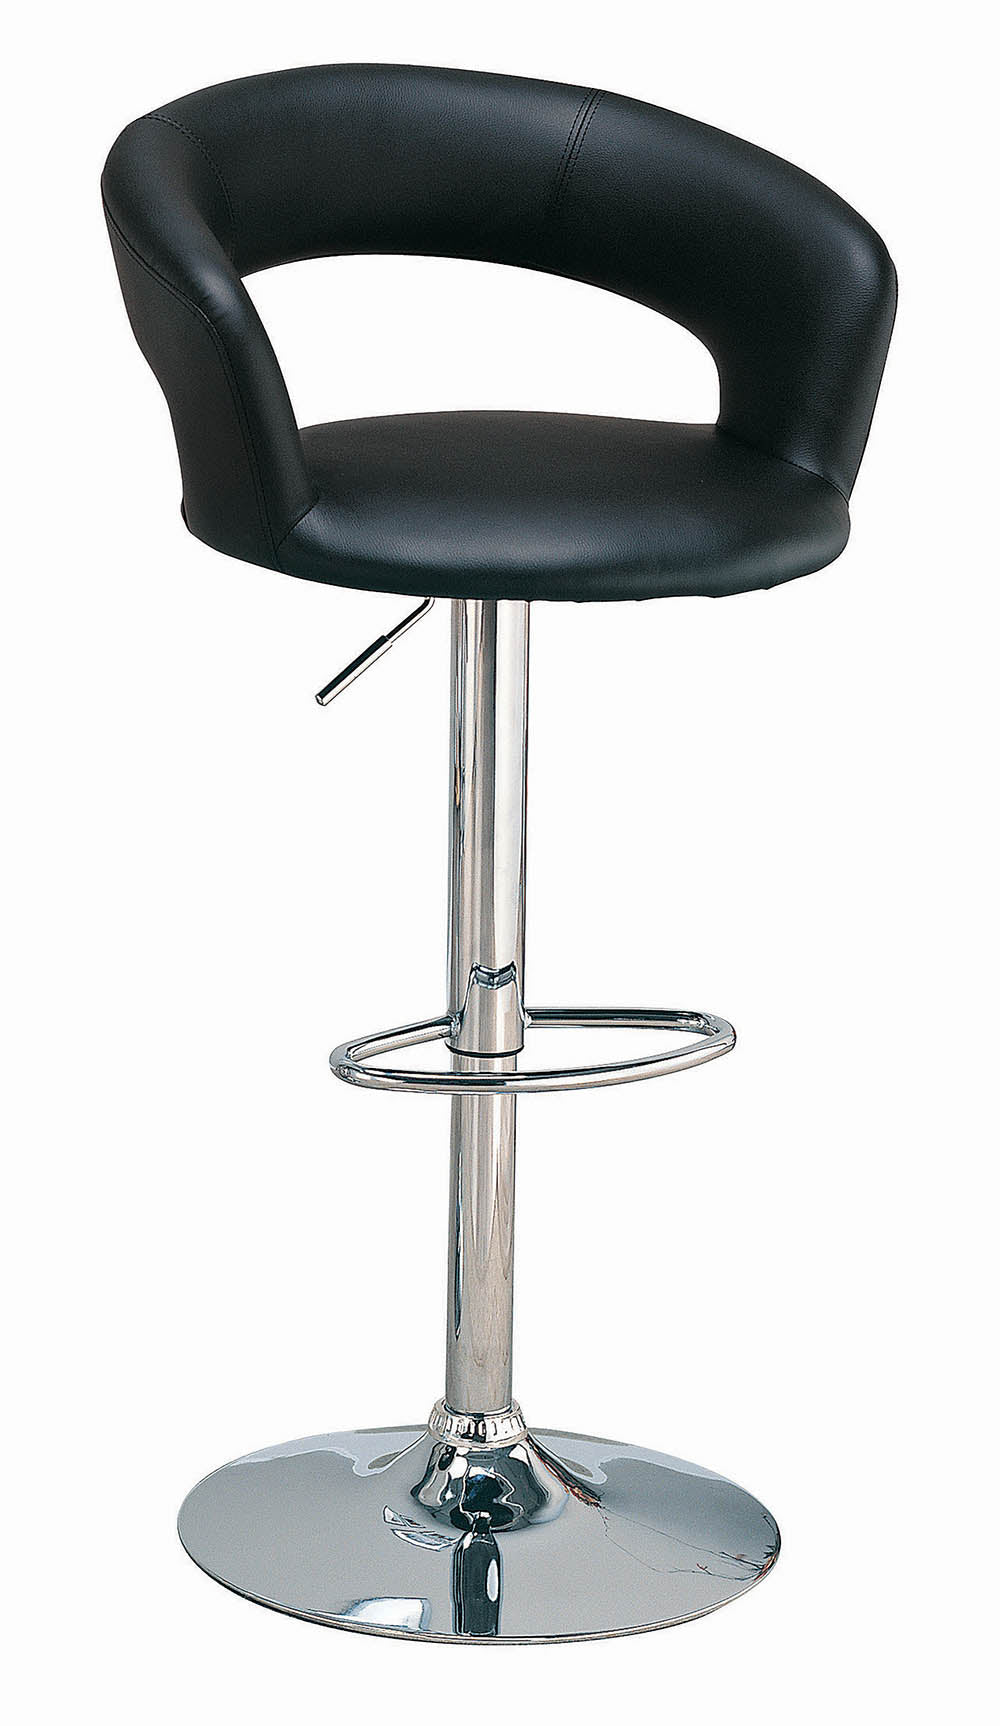 Coaster Adjustable Black Upholstered Chrome Base Bar Stool